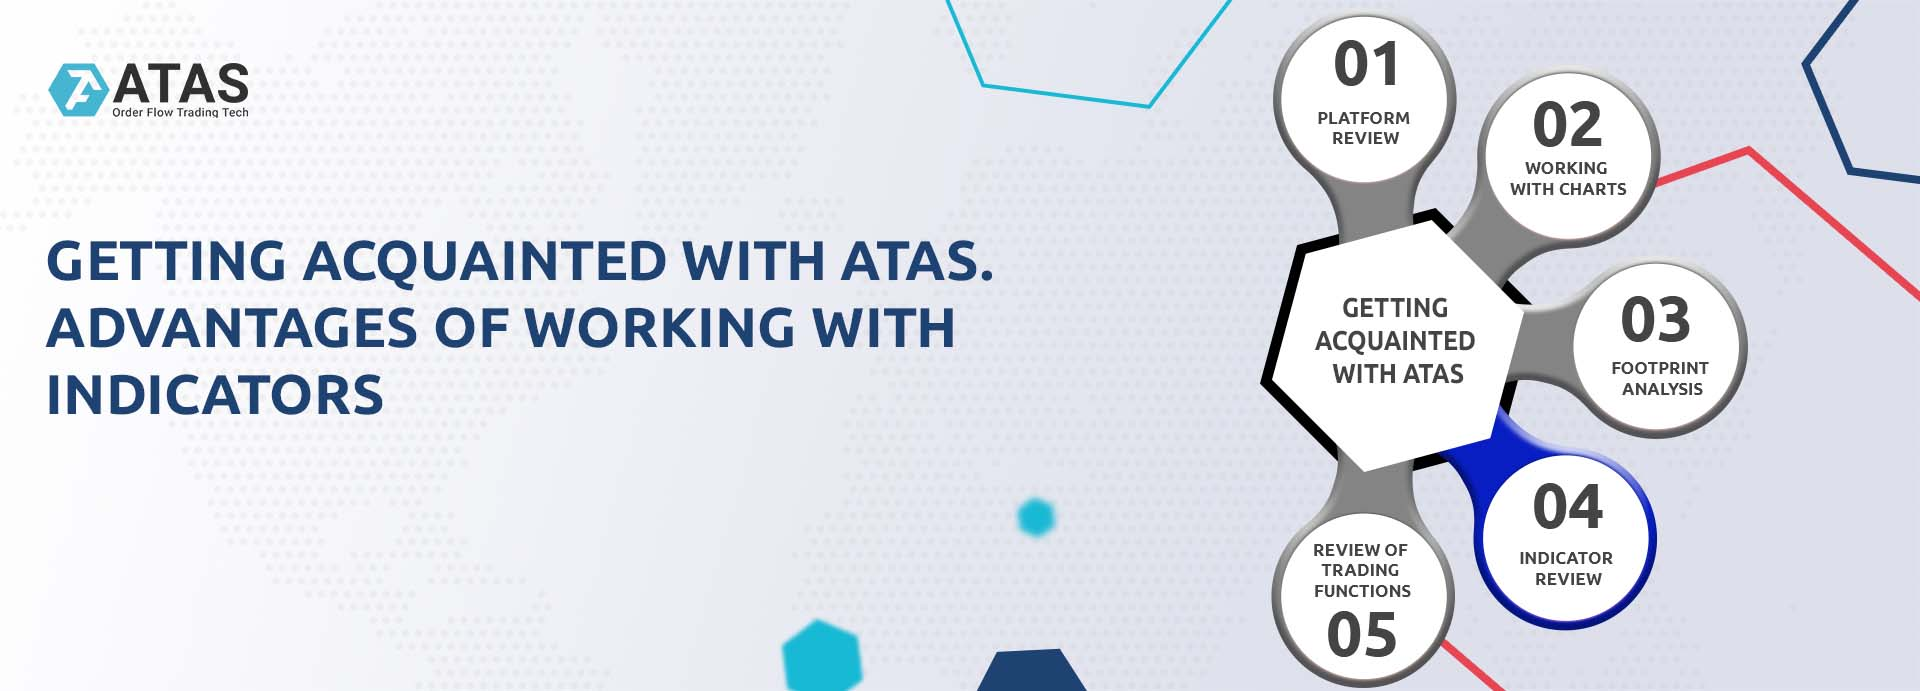 Getting acquainted with ATAS. Advantages of working with indicators